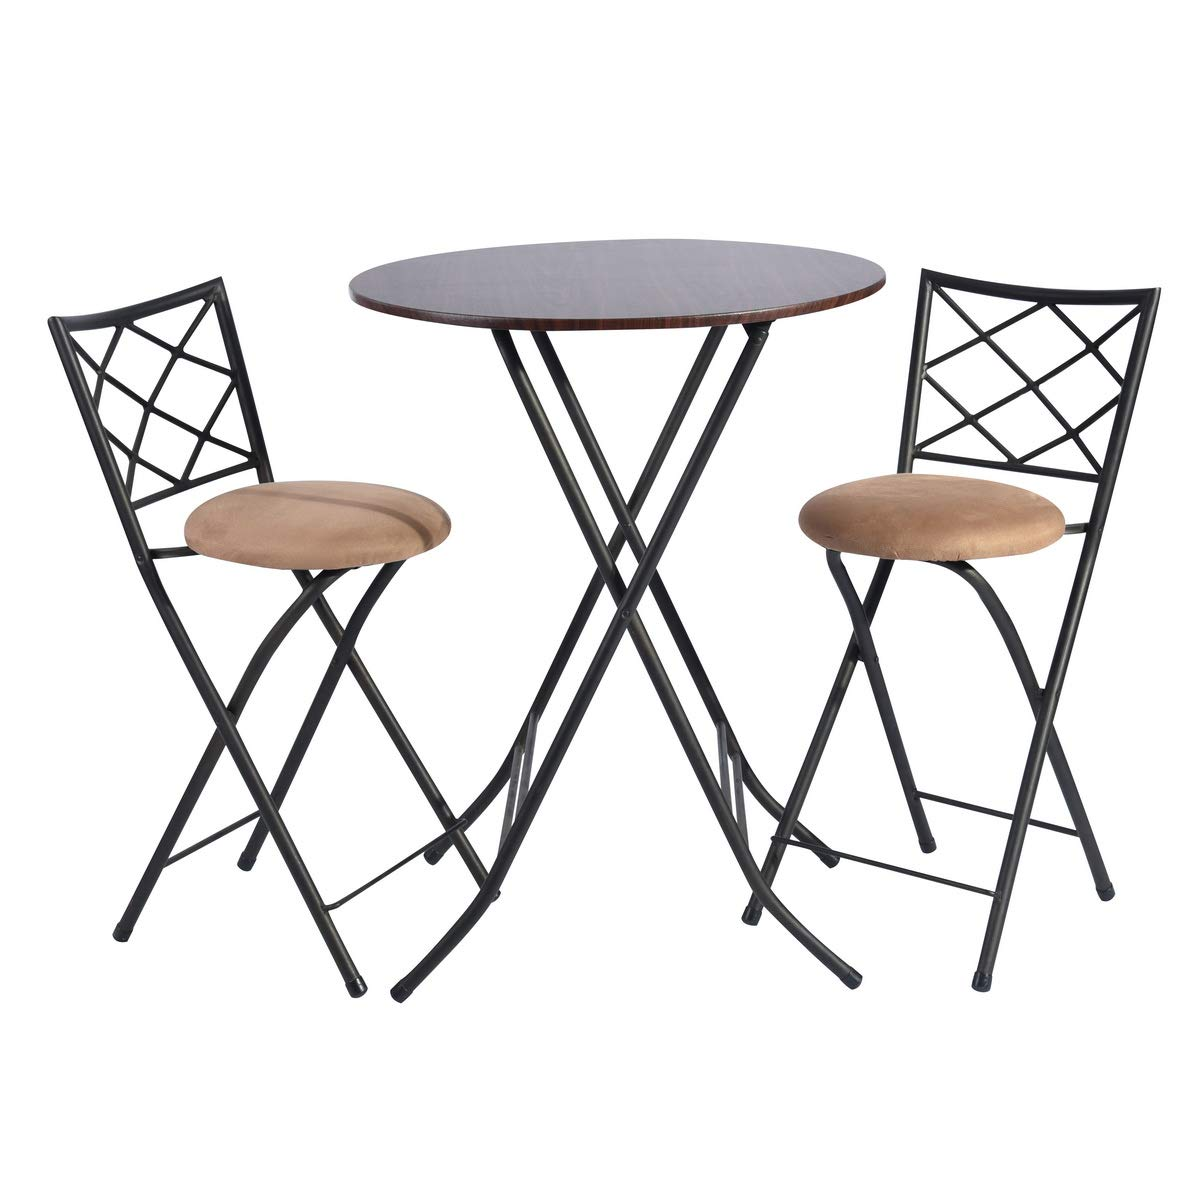 Framodo 3 Piece Folding Counter Height Pub Dining Table Set, No-Assembly Round High Breakfast Table with 2 Cushioned Folding Bar Stool Chairs